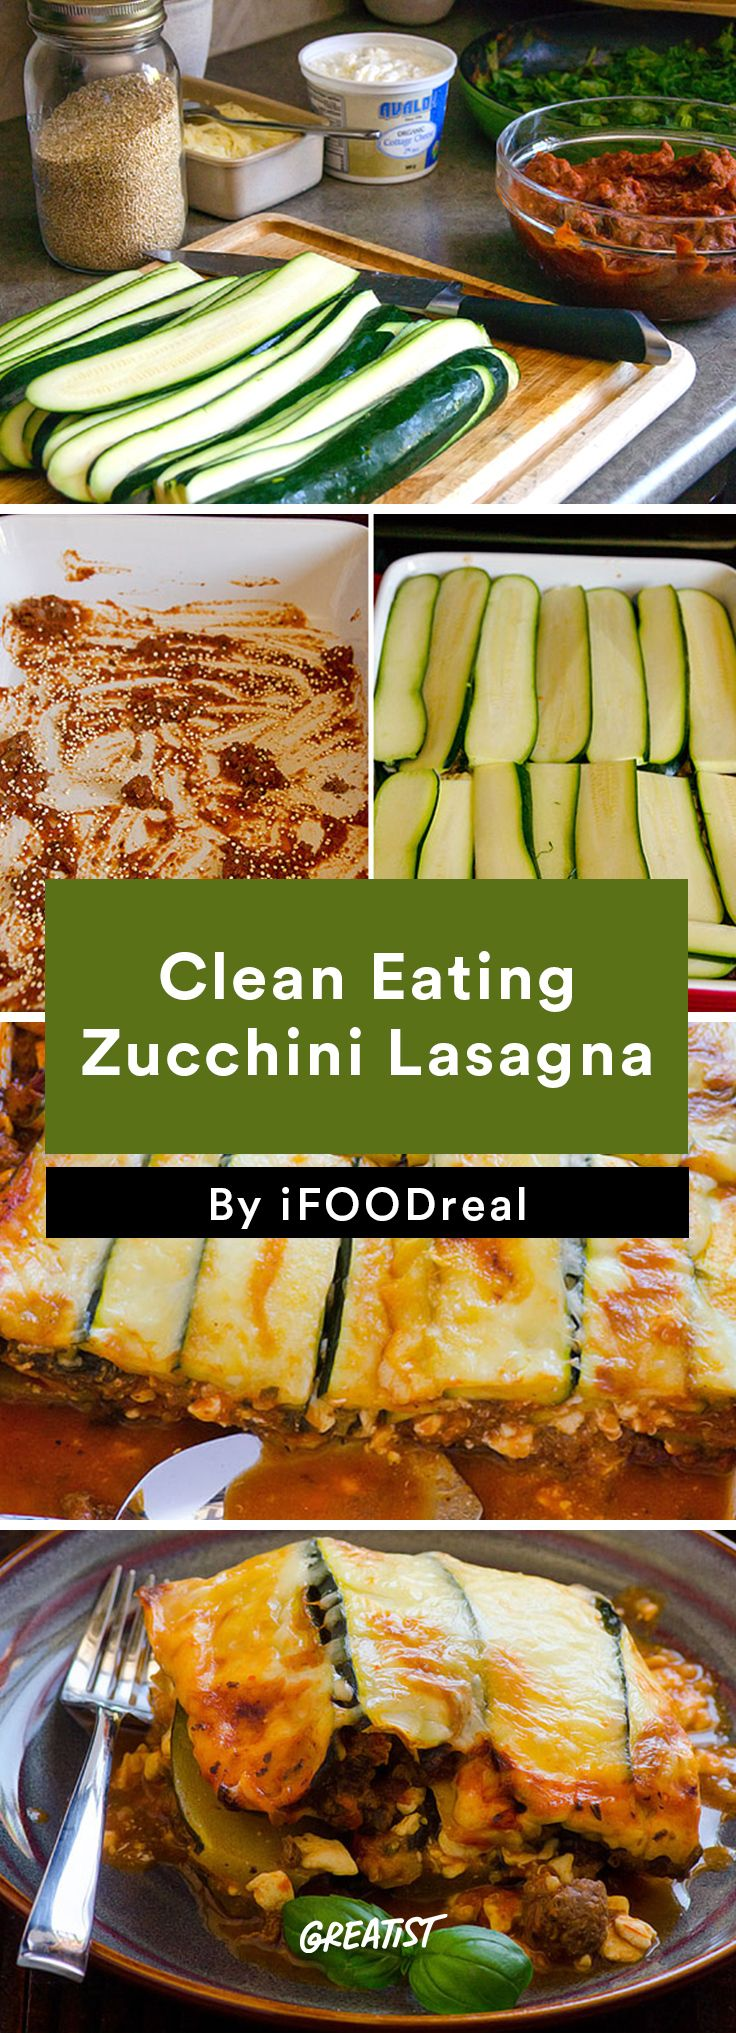 6. Clean Eating Zucchini Lasagna #healthy #dinner #recipes http://greatist.com/eat/clean-eating-ground-turkey-recipes